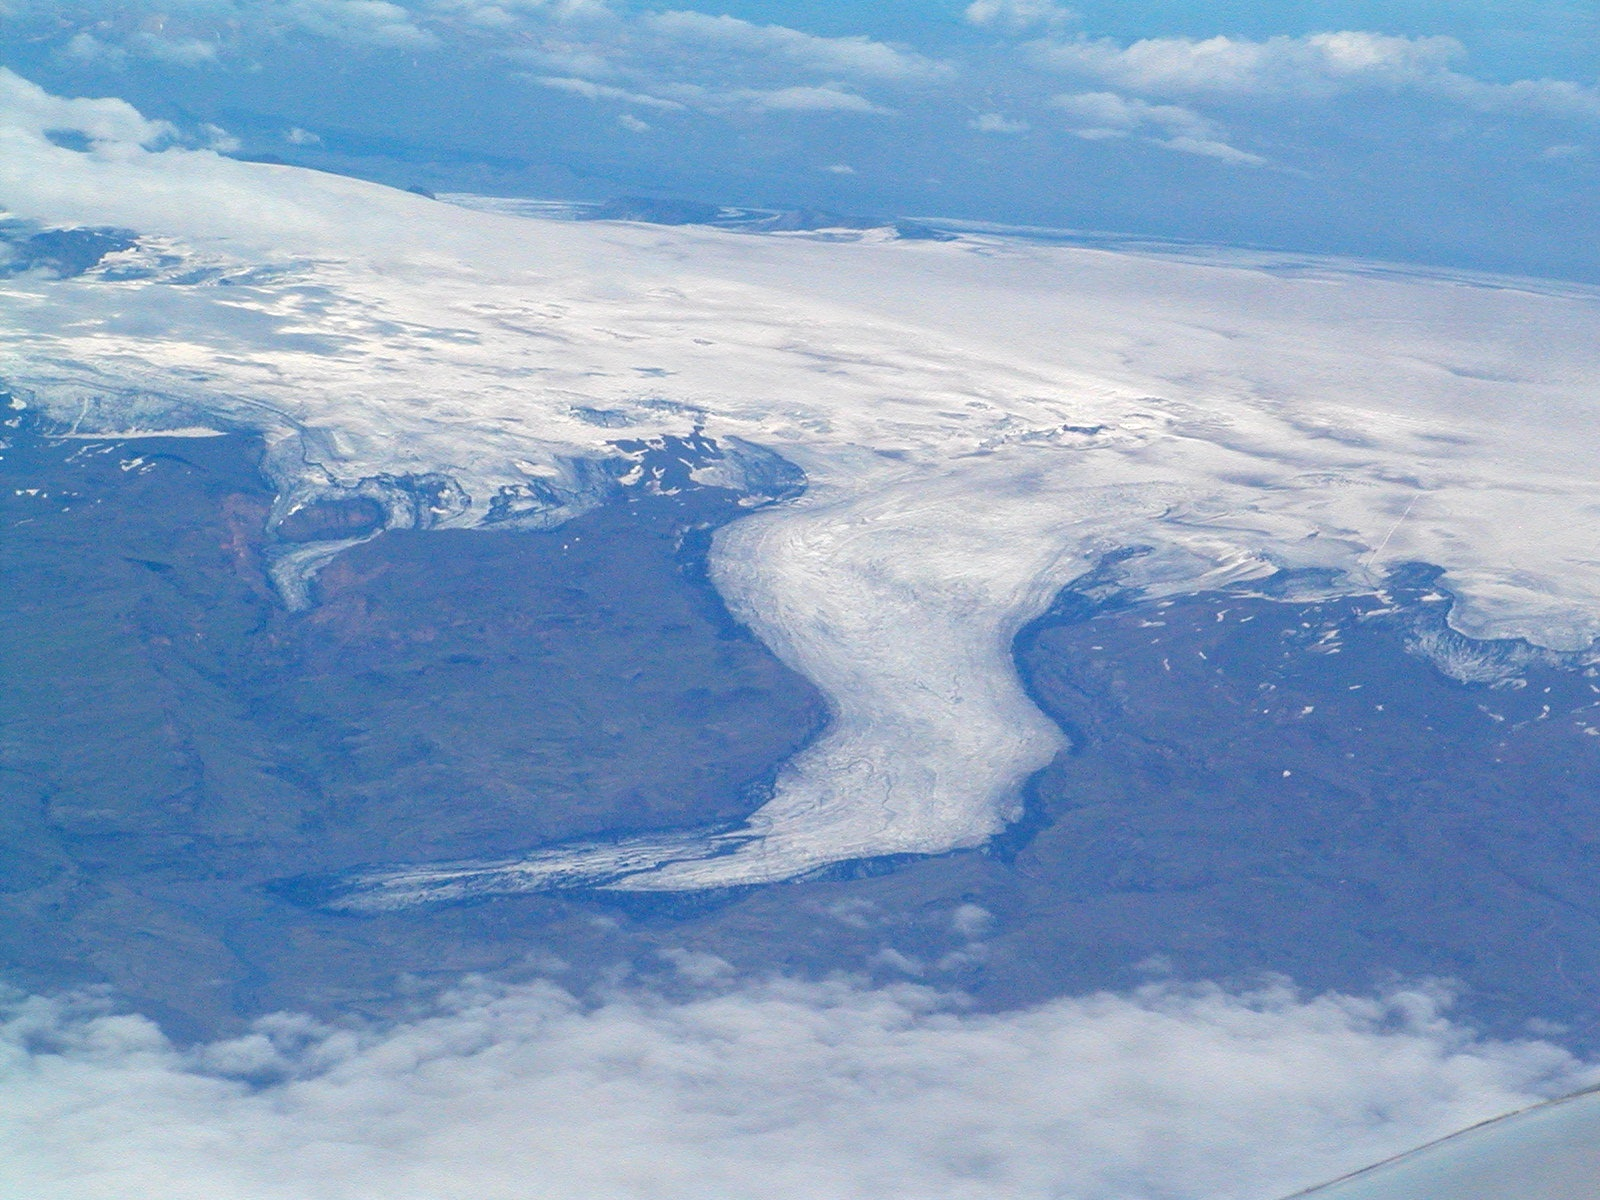 iceland glacier fro the air author lucke charlie